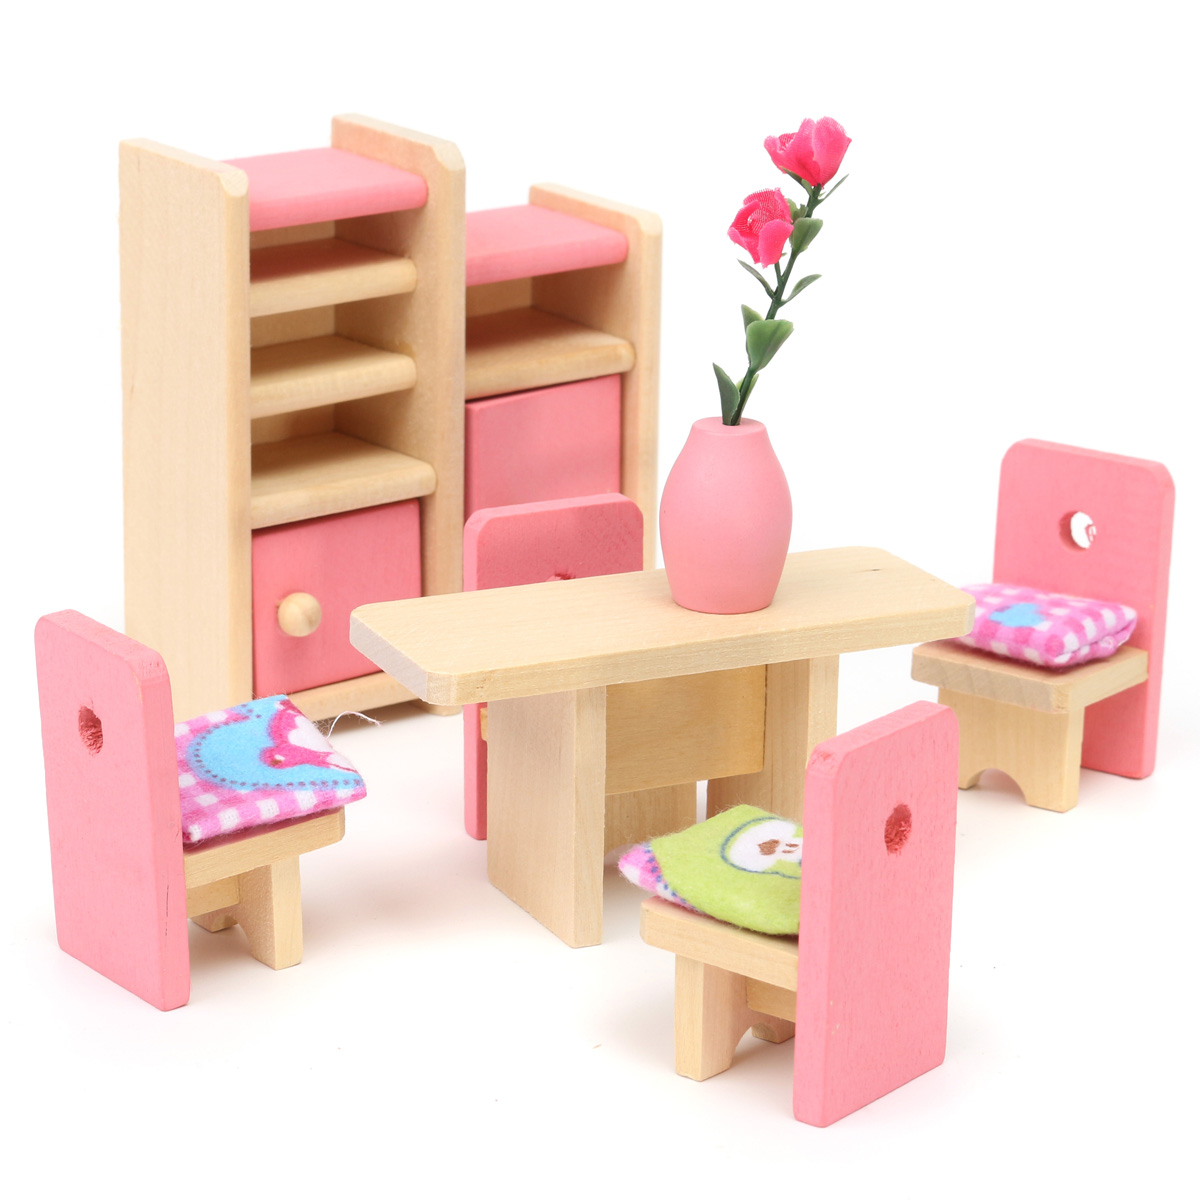 Wooden Furniture 6 Room Set Dolls House Family Miniature Kids